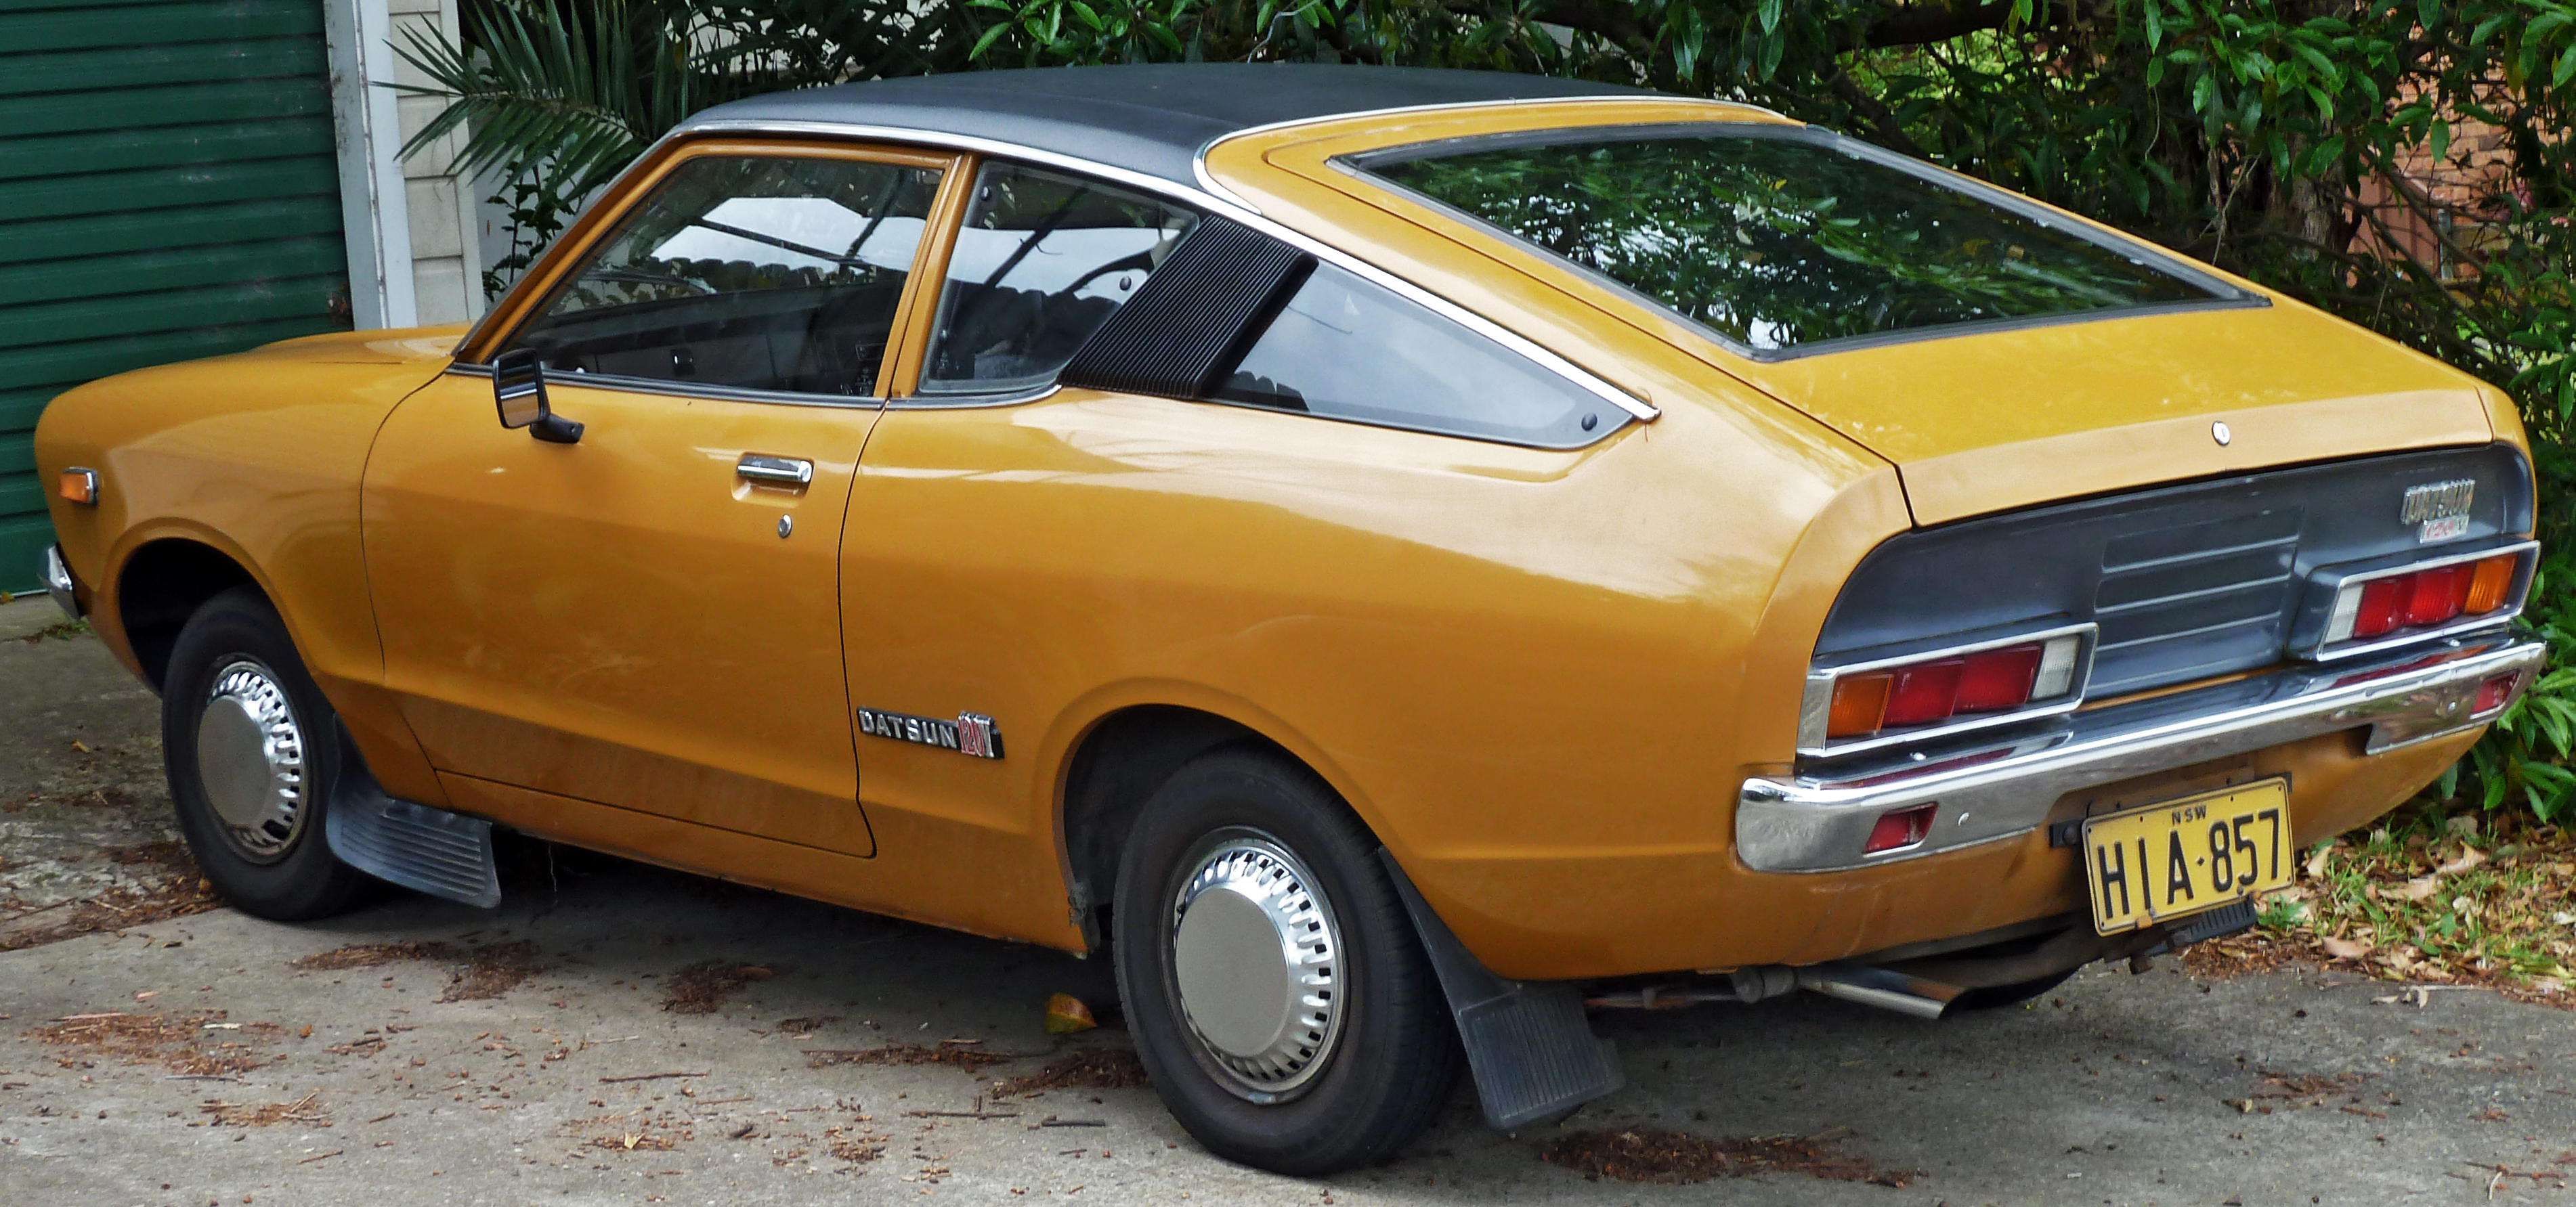 Datsun laurel photo - 3